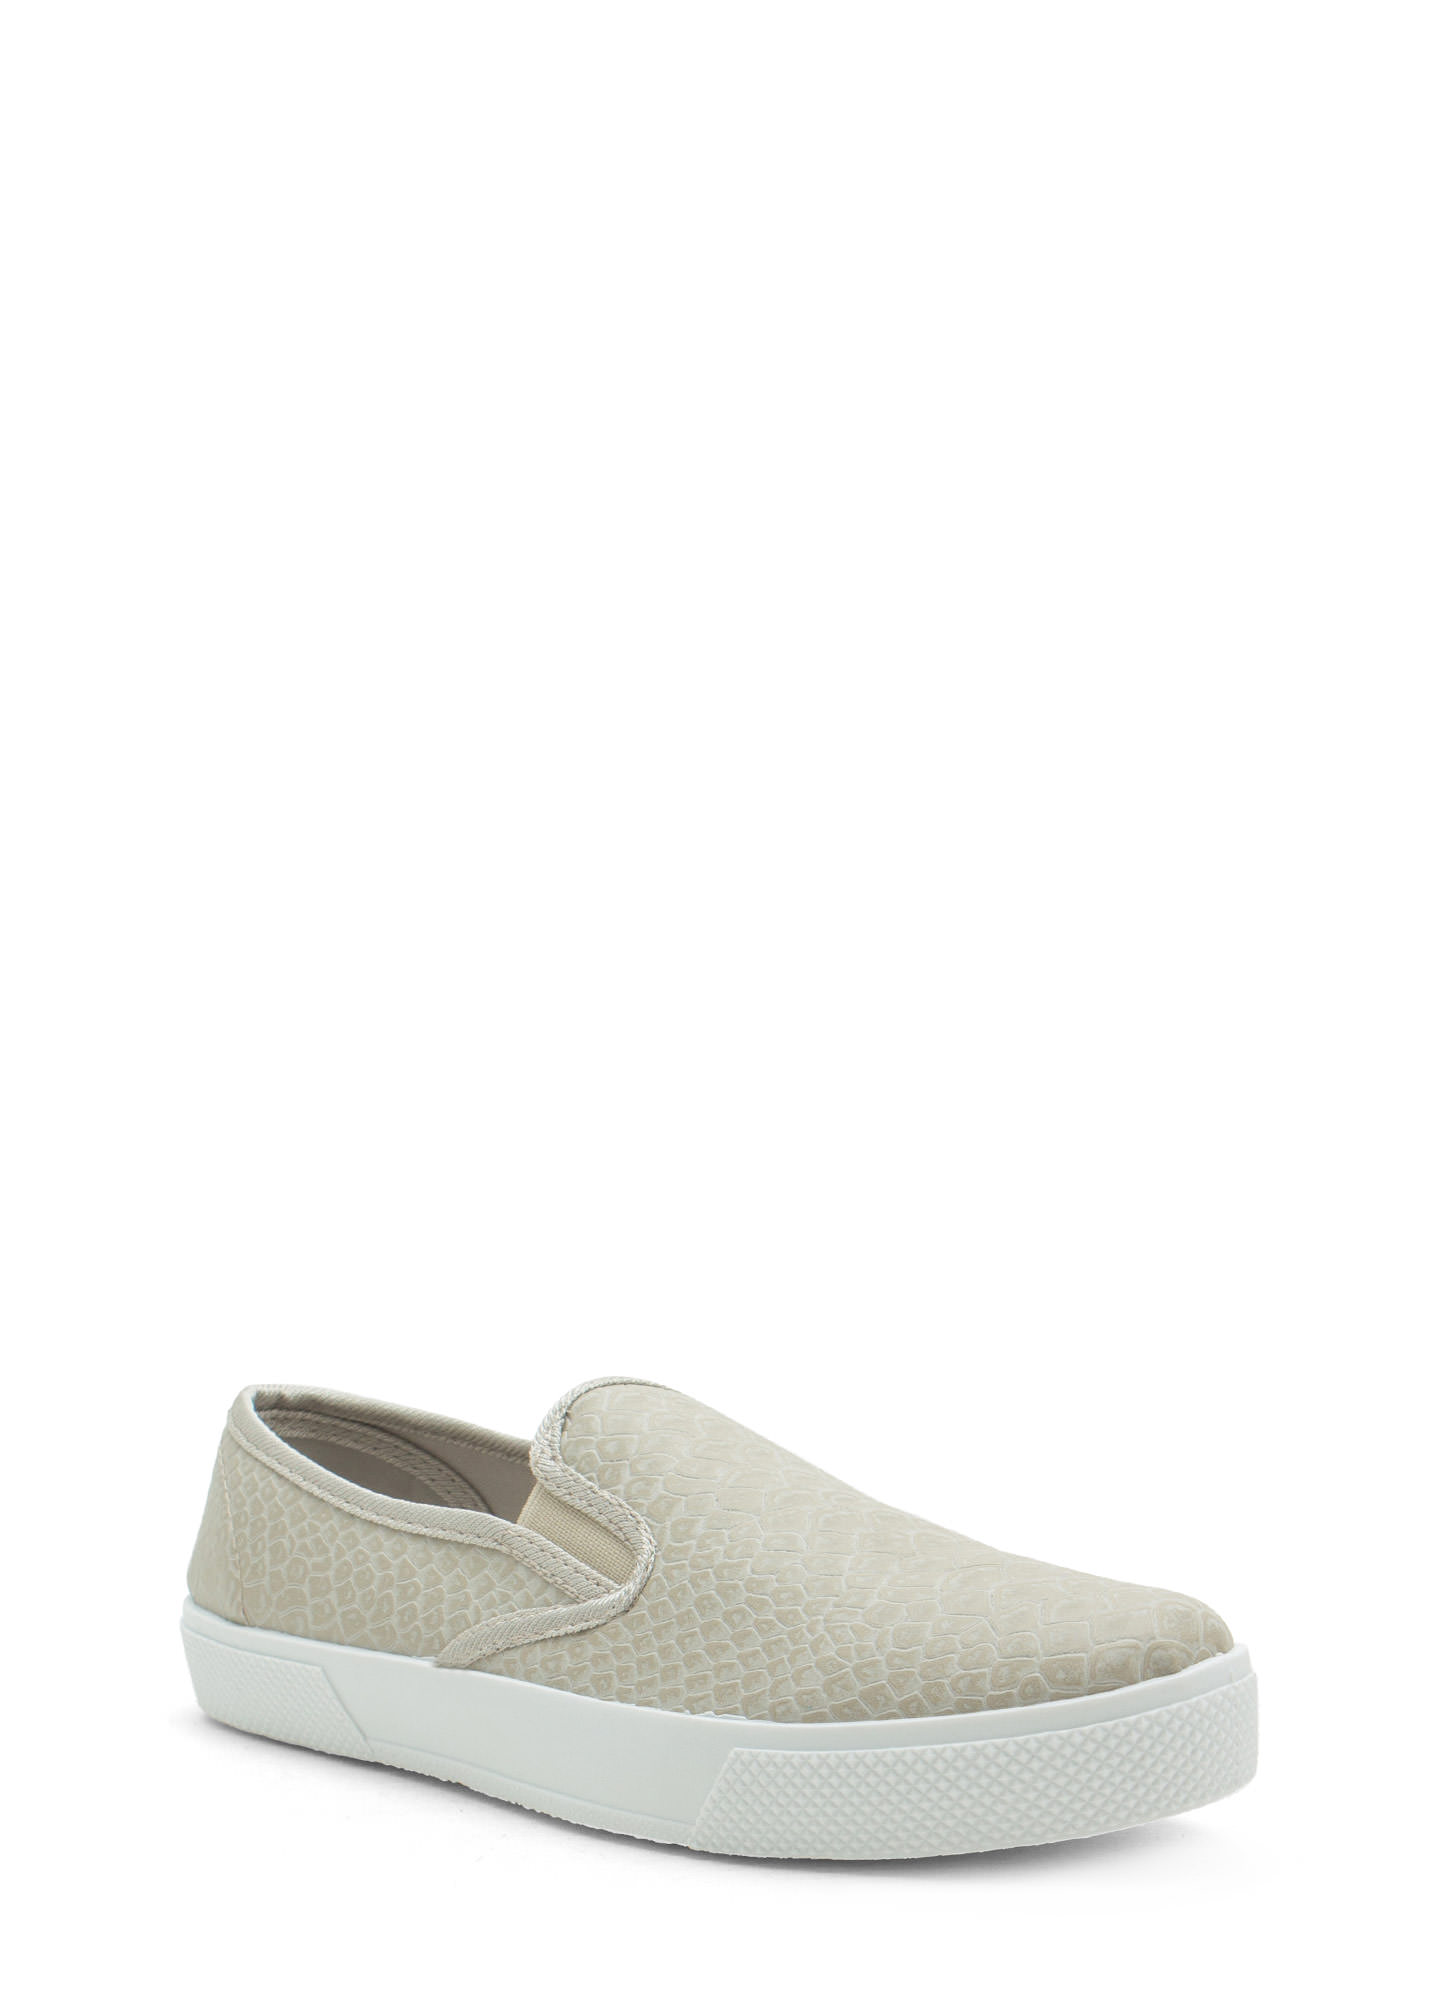 Come Slither Scaled Slip-On Sneakers GREY